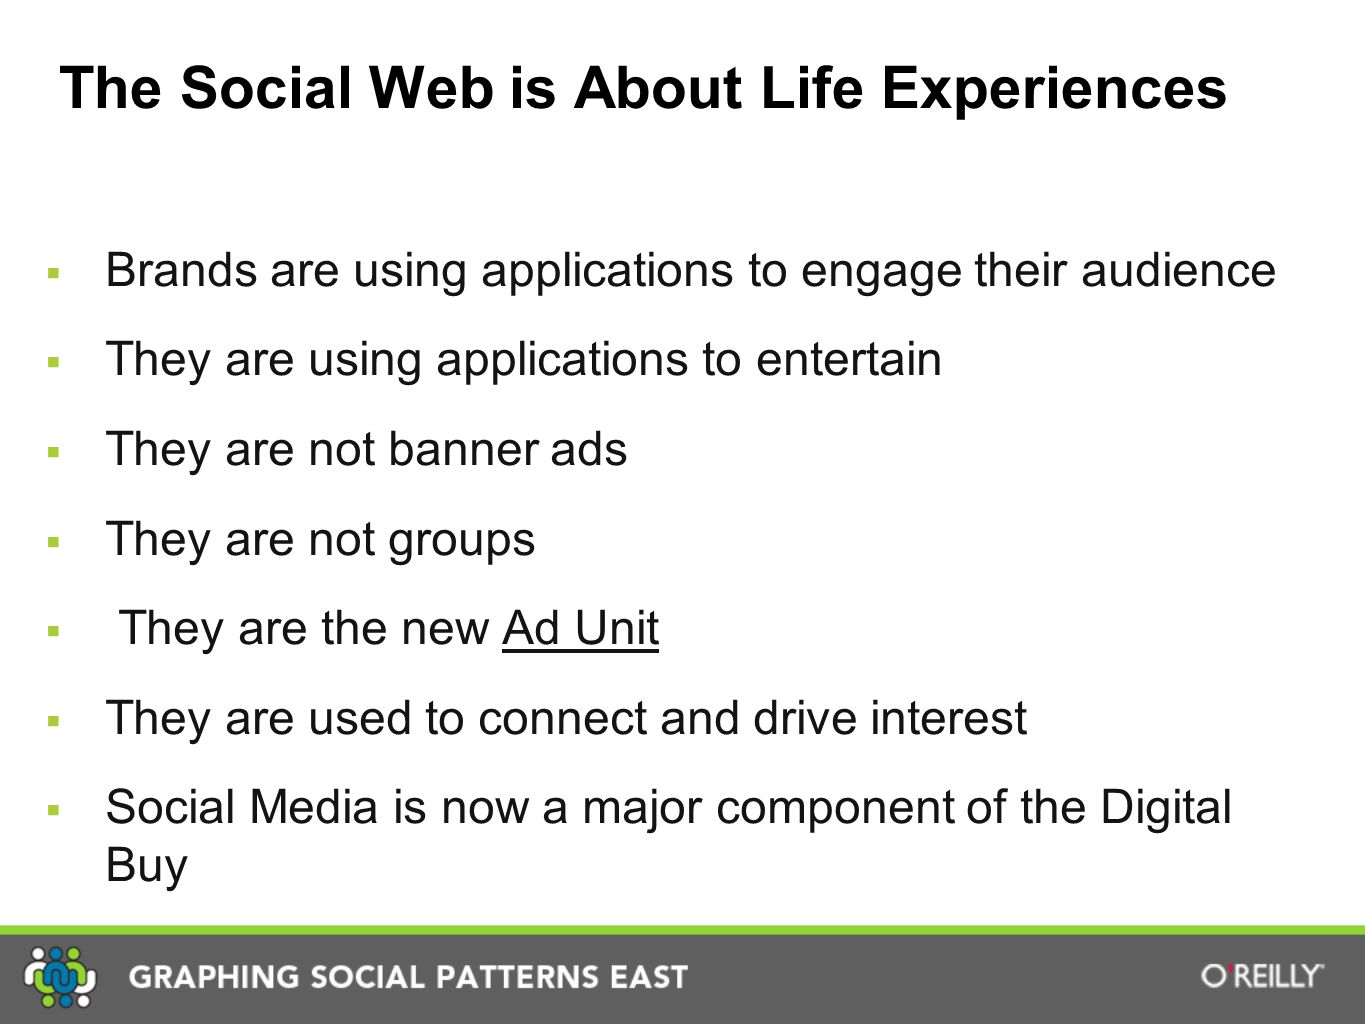 The Social Web is About Life Experiences  Brands are using applications to engage their audience  They are using applications to entertain  They are not banner ads  They are not groups  They are the new Ad Unit  They are used to connect and drive interest  Social Media is now a major component of the Digital Buy